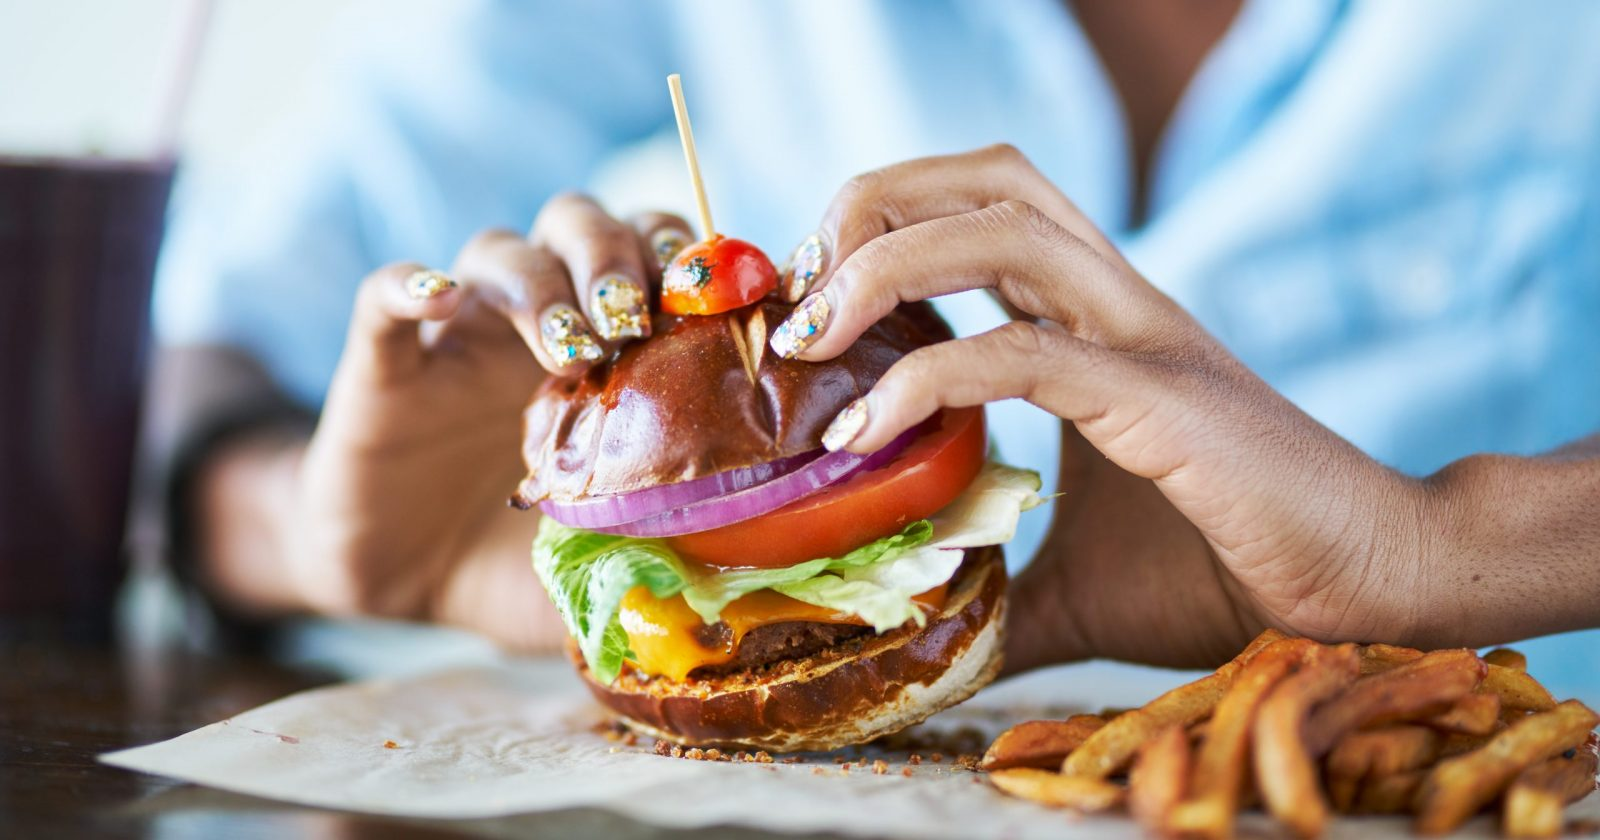 A woman going to pick up a vegan burger at a restaurant / Photo Credit: Joshua Resnick, Shutterstock